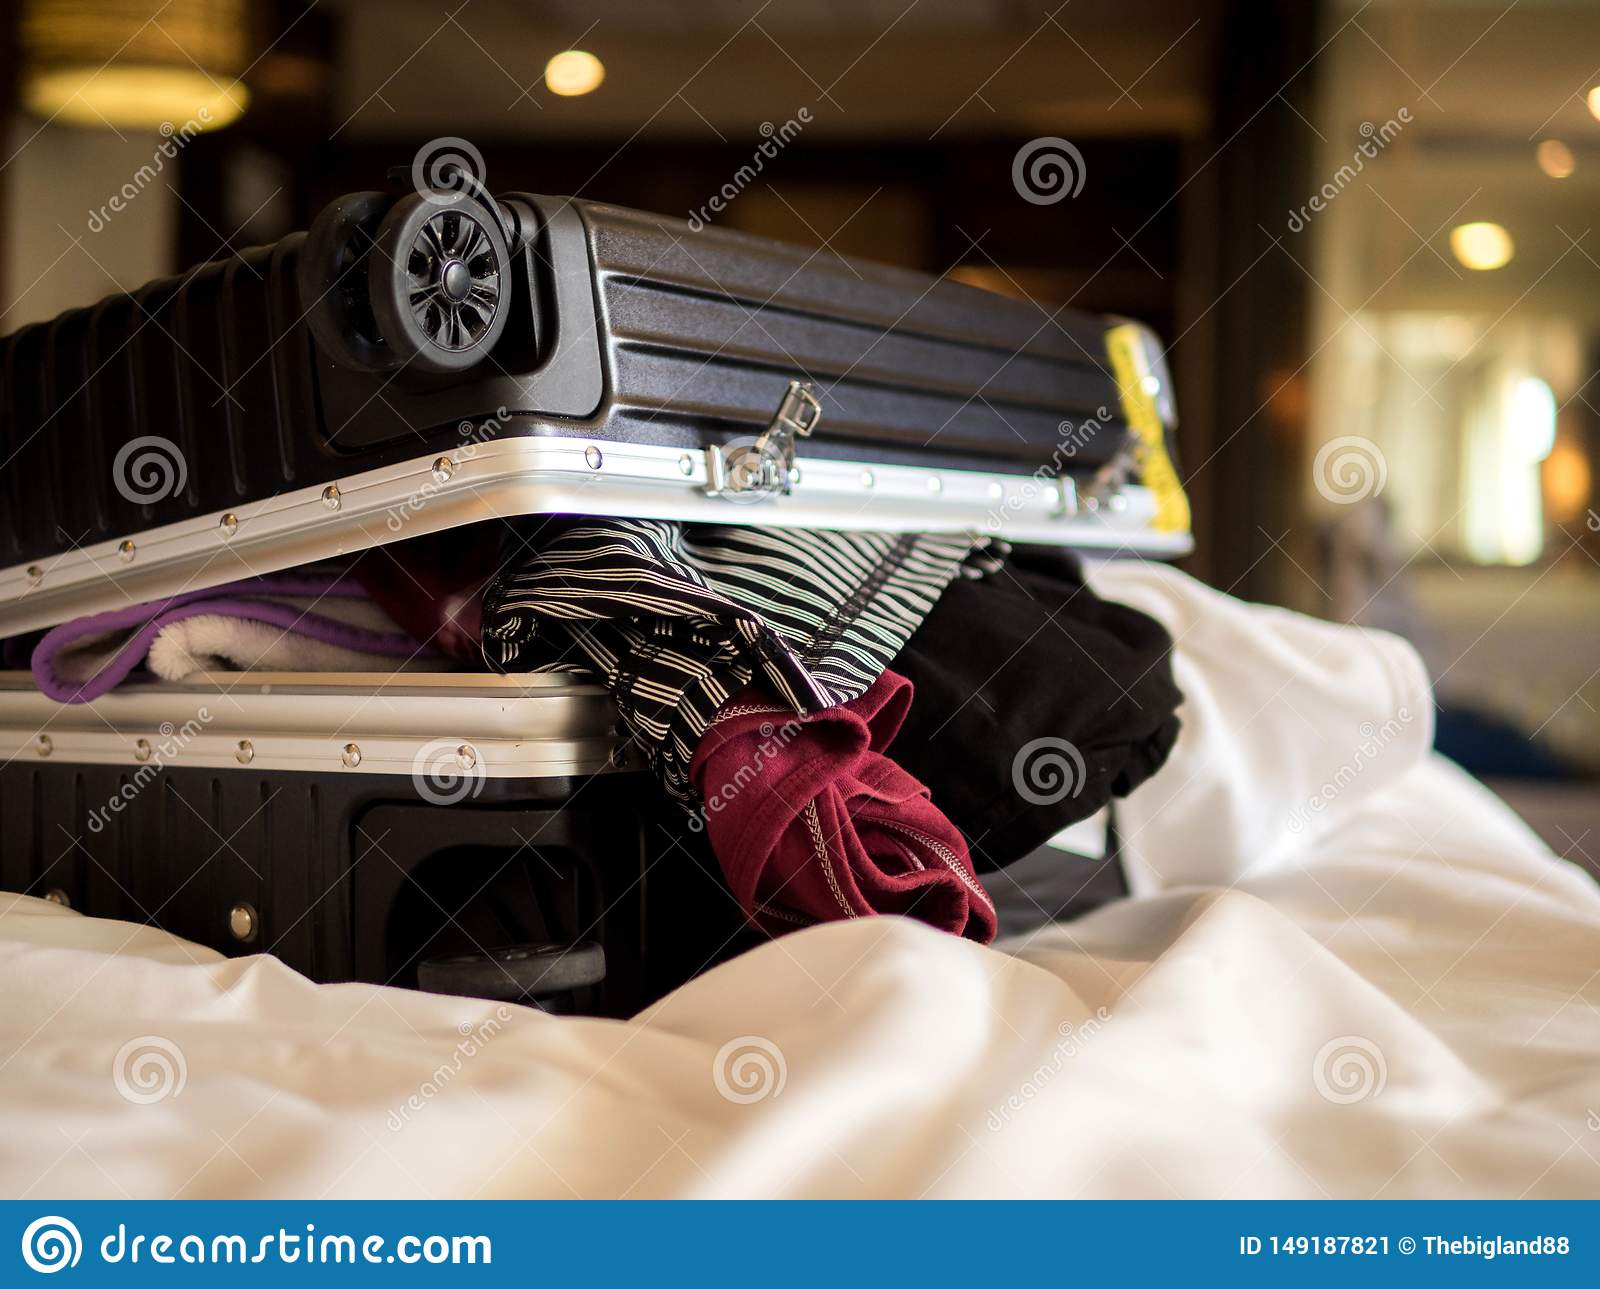 Travel and vacation concept, Packing a lot of clothes and stuff into suitcase on bed prepare for travel and journey trip in